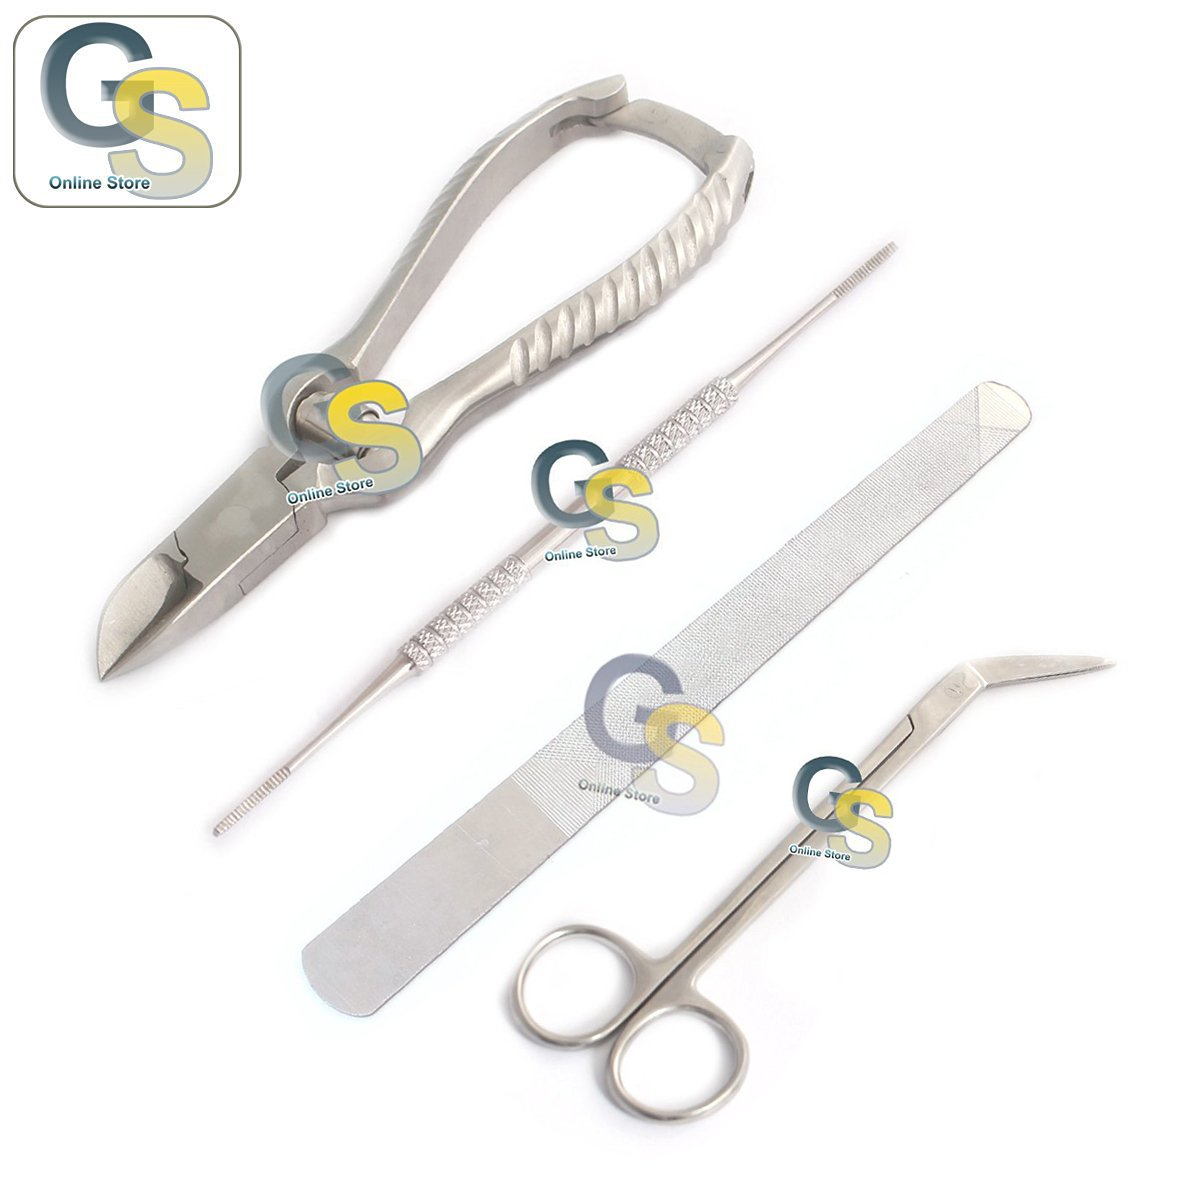 G.S TOENAIL CLIPPERS FOR DIABETICS ELDERLY PROFESSIONAL FOOT NAIL CARE KIT SCISSORS